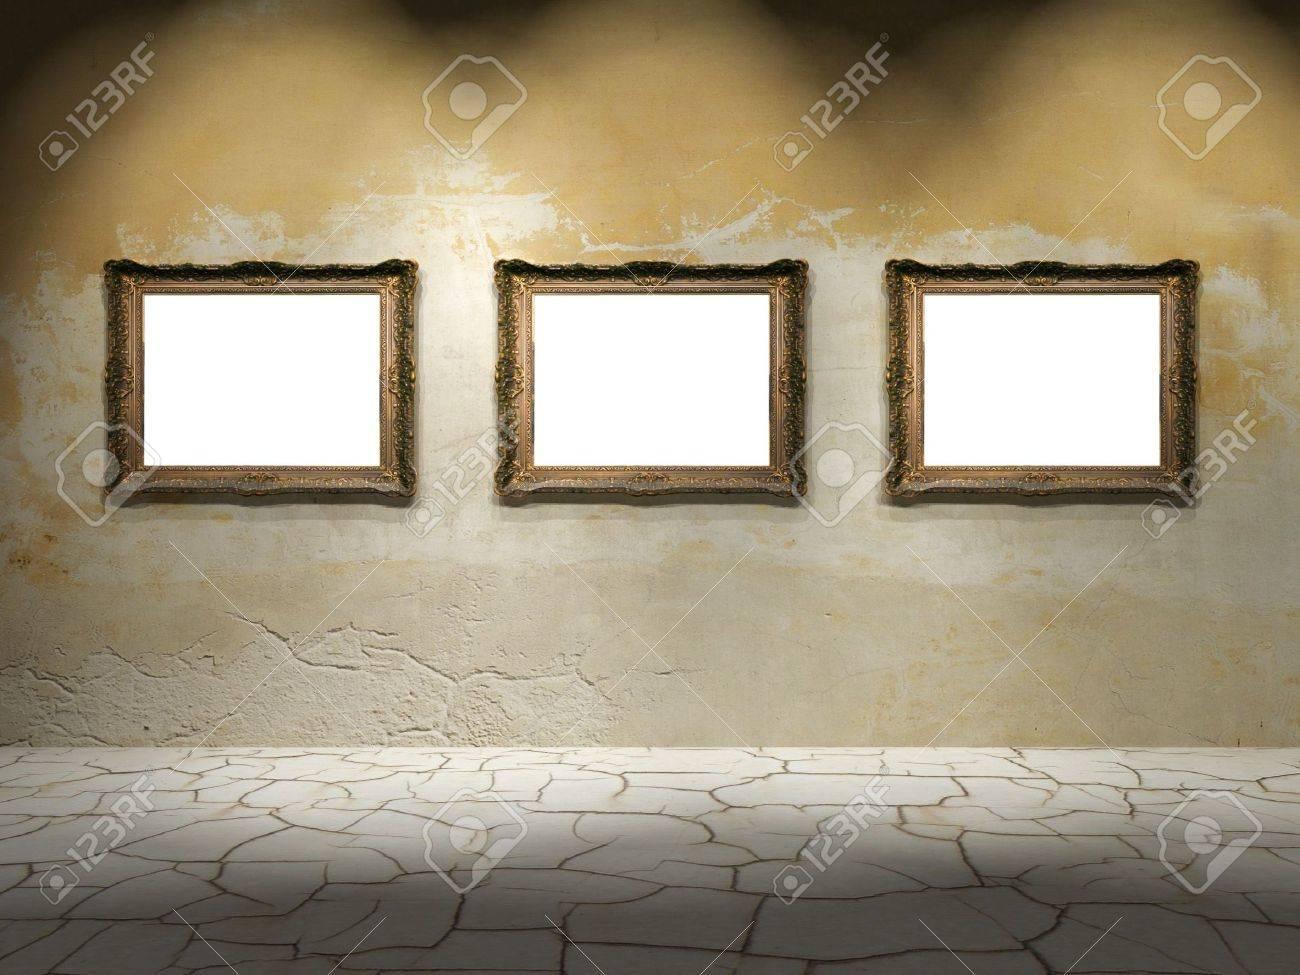 A dark room with gold frames on the wall Stock Photo - 5245383